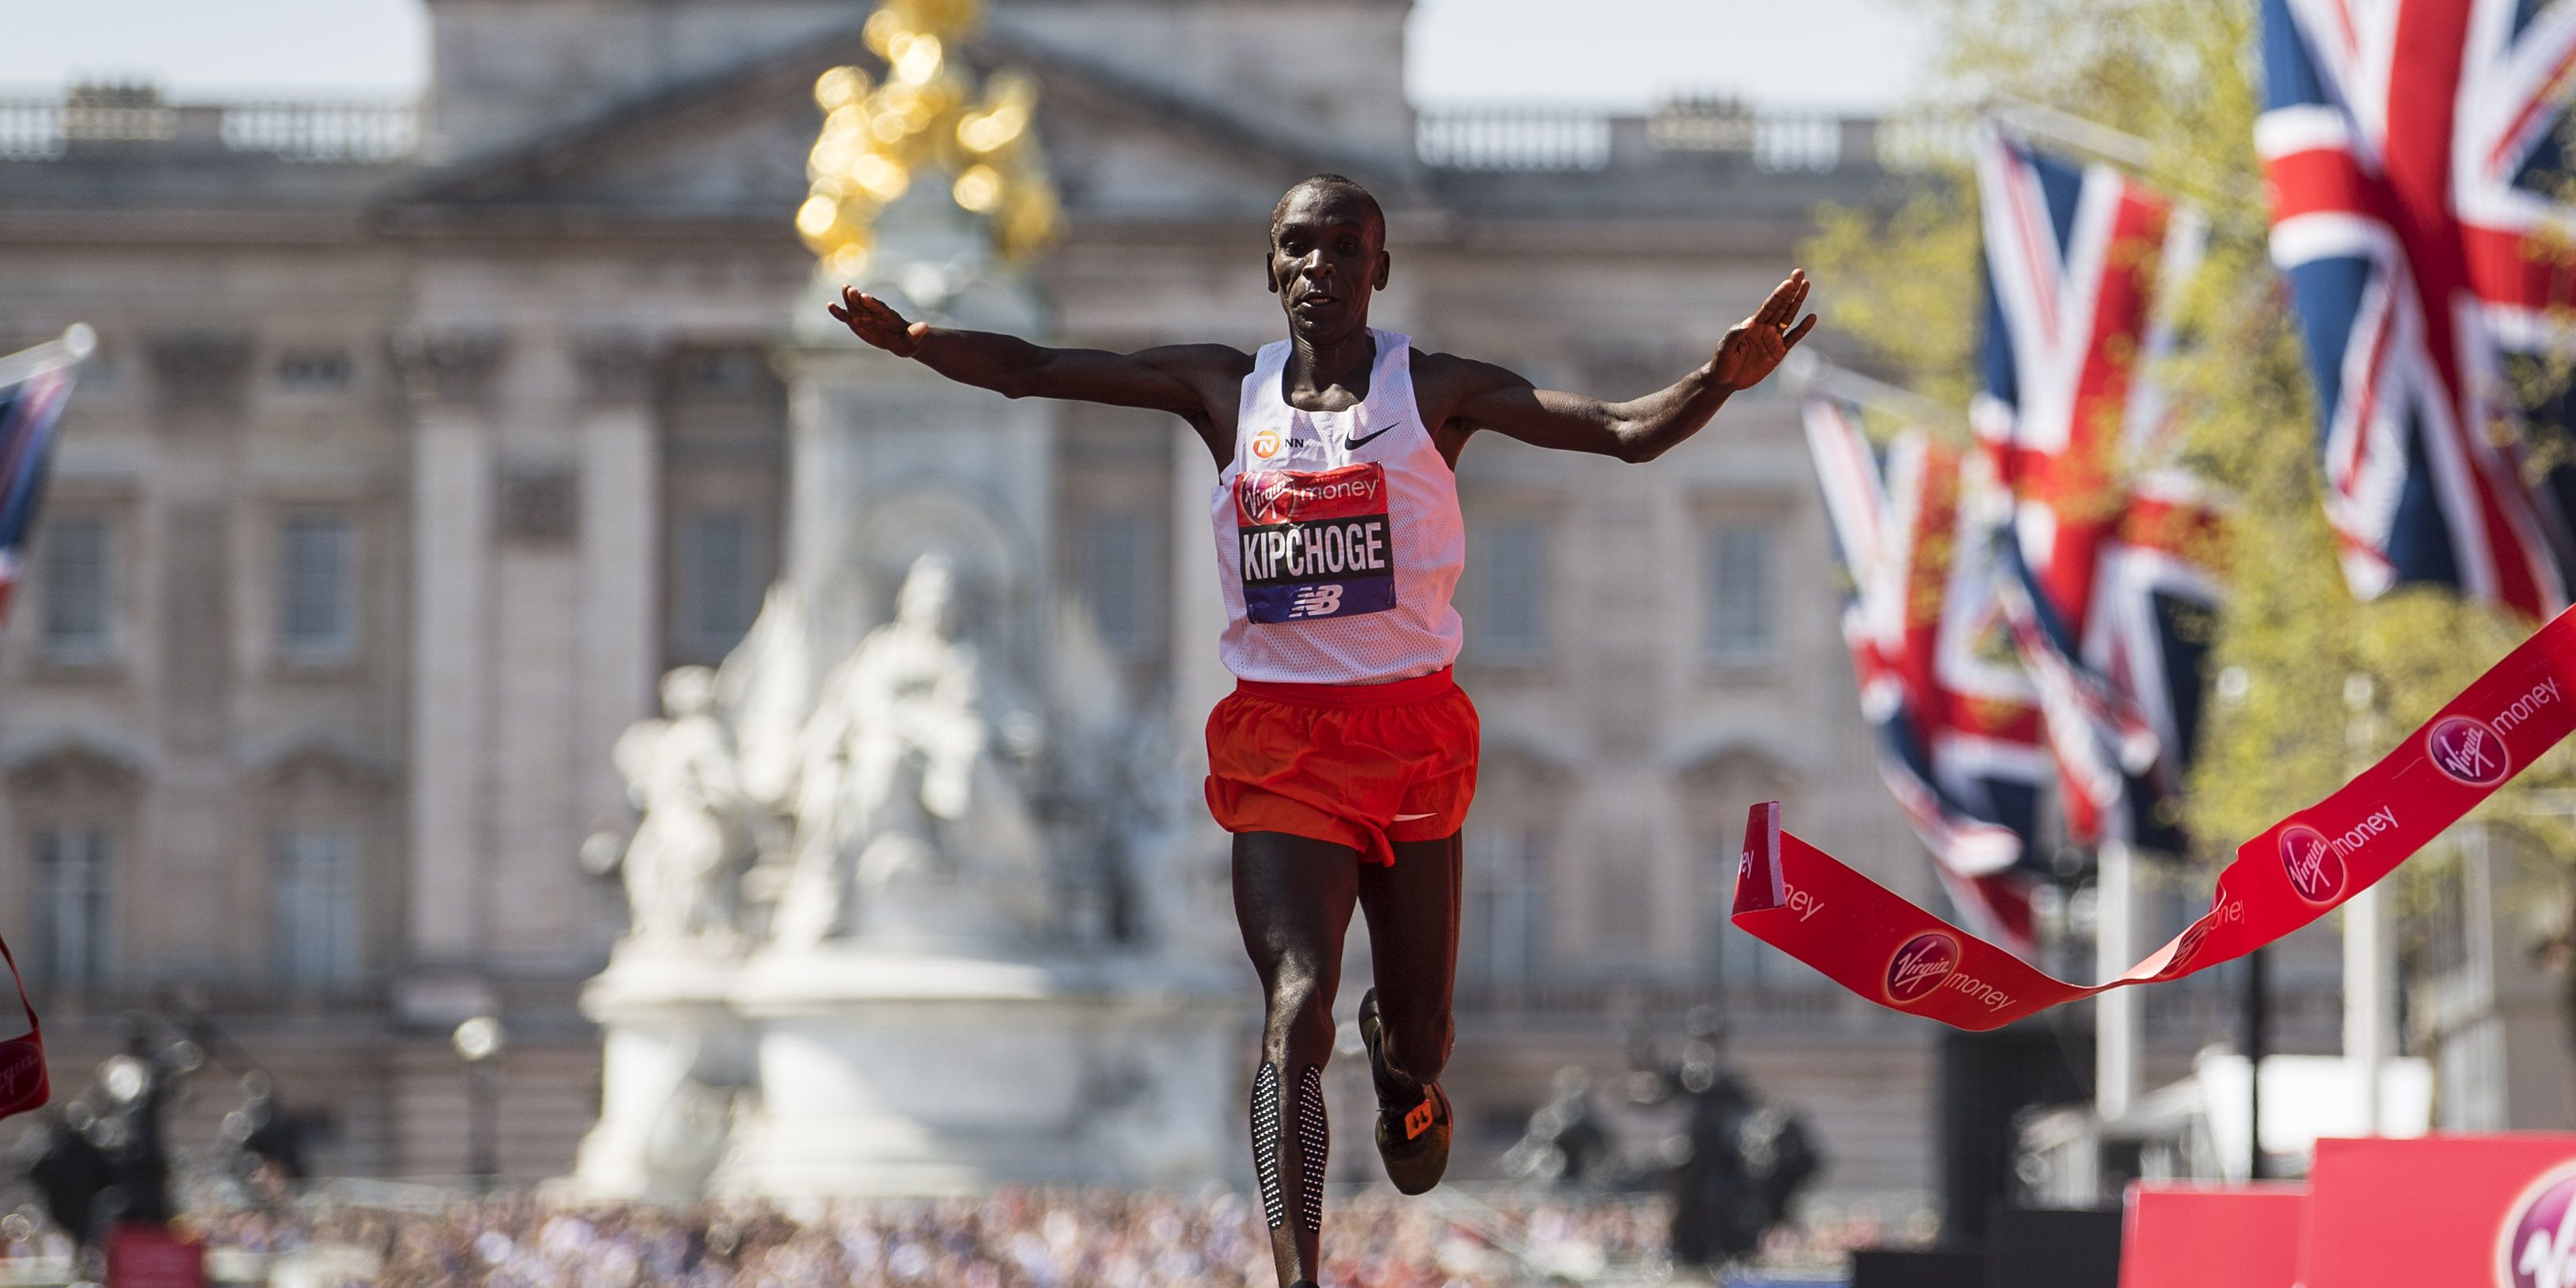 Kipchoge to run London Marathon 2019